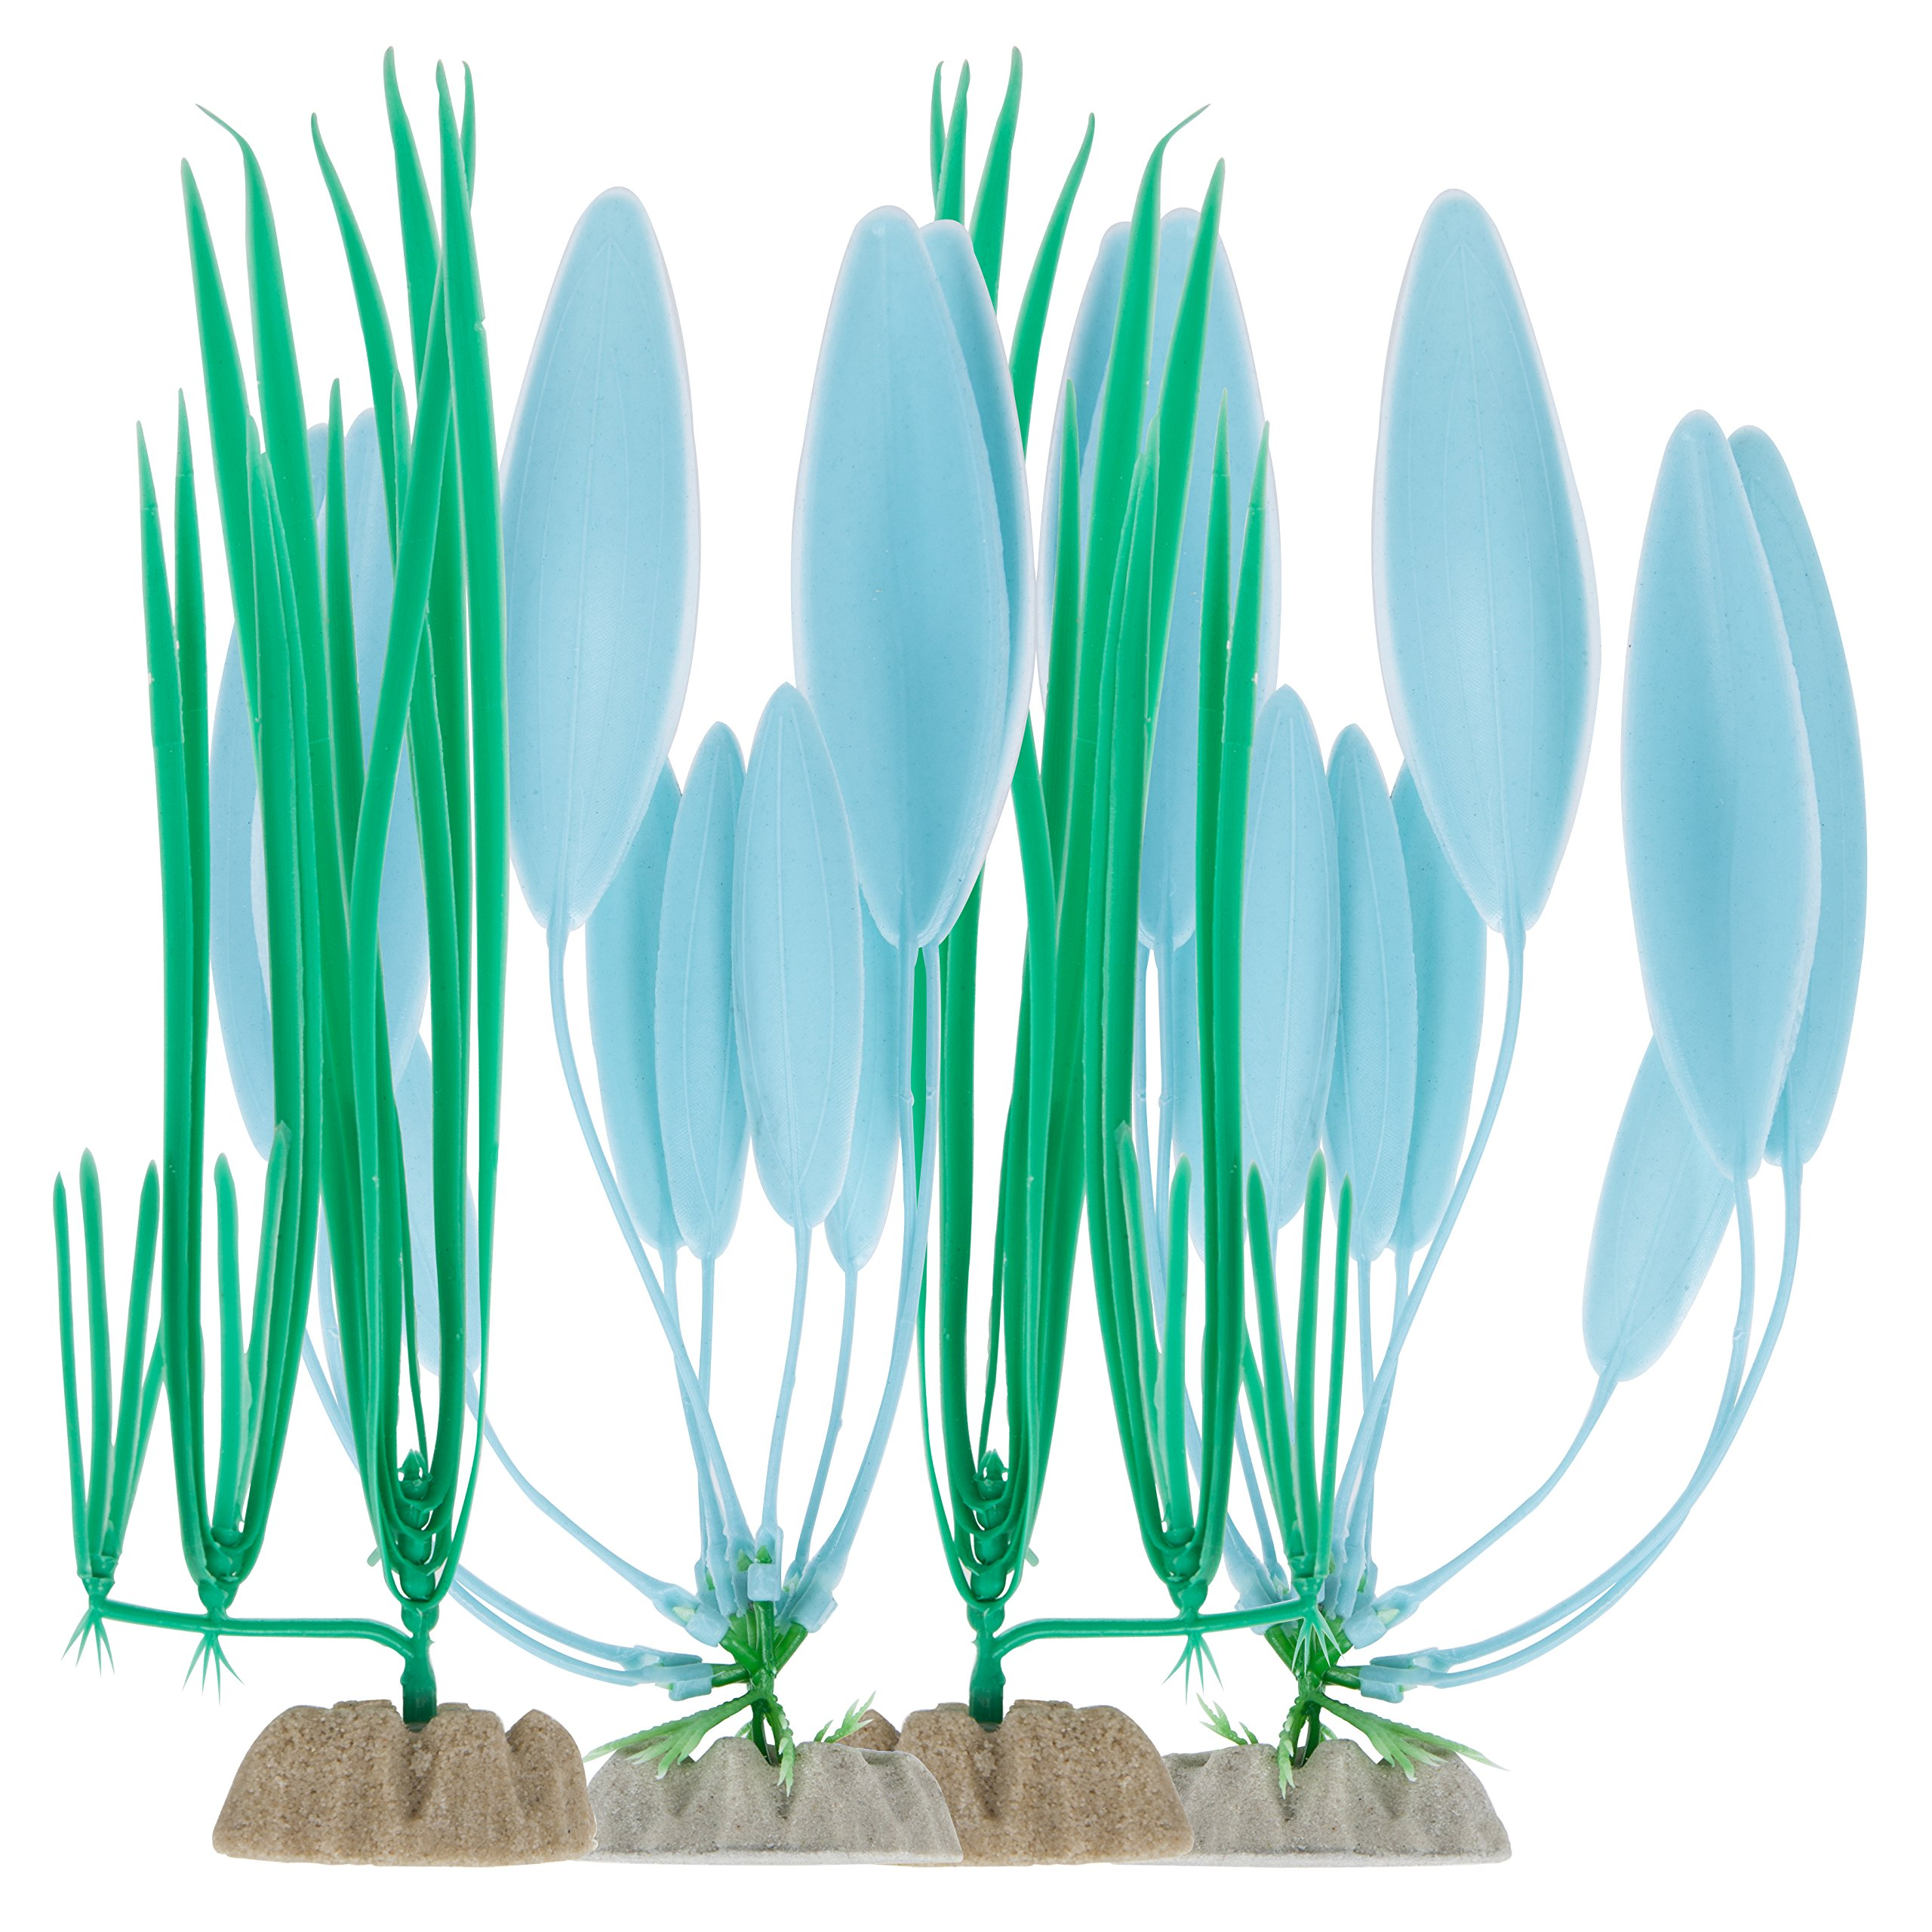 Tetra 26645 Wonderland Collection Plant, 4-Pack